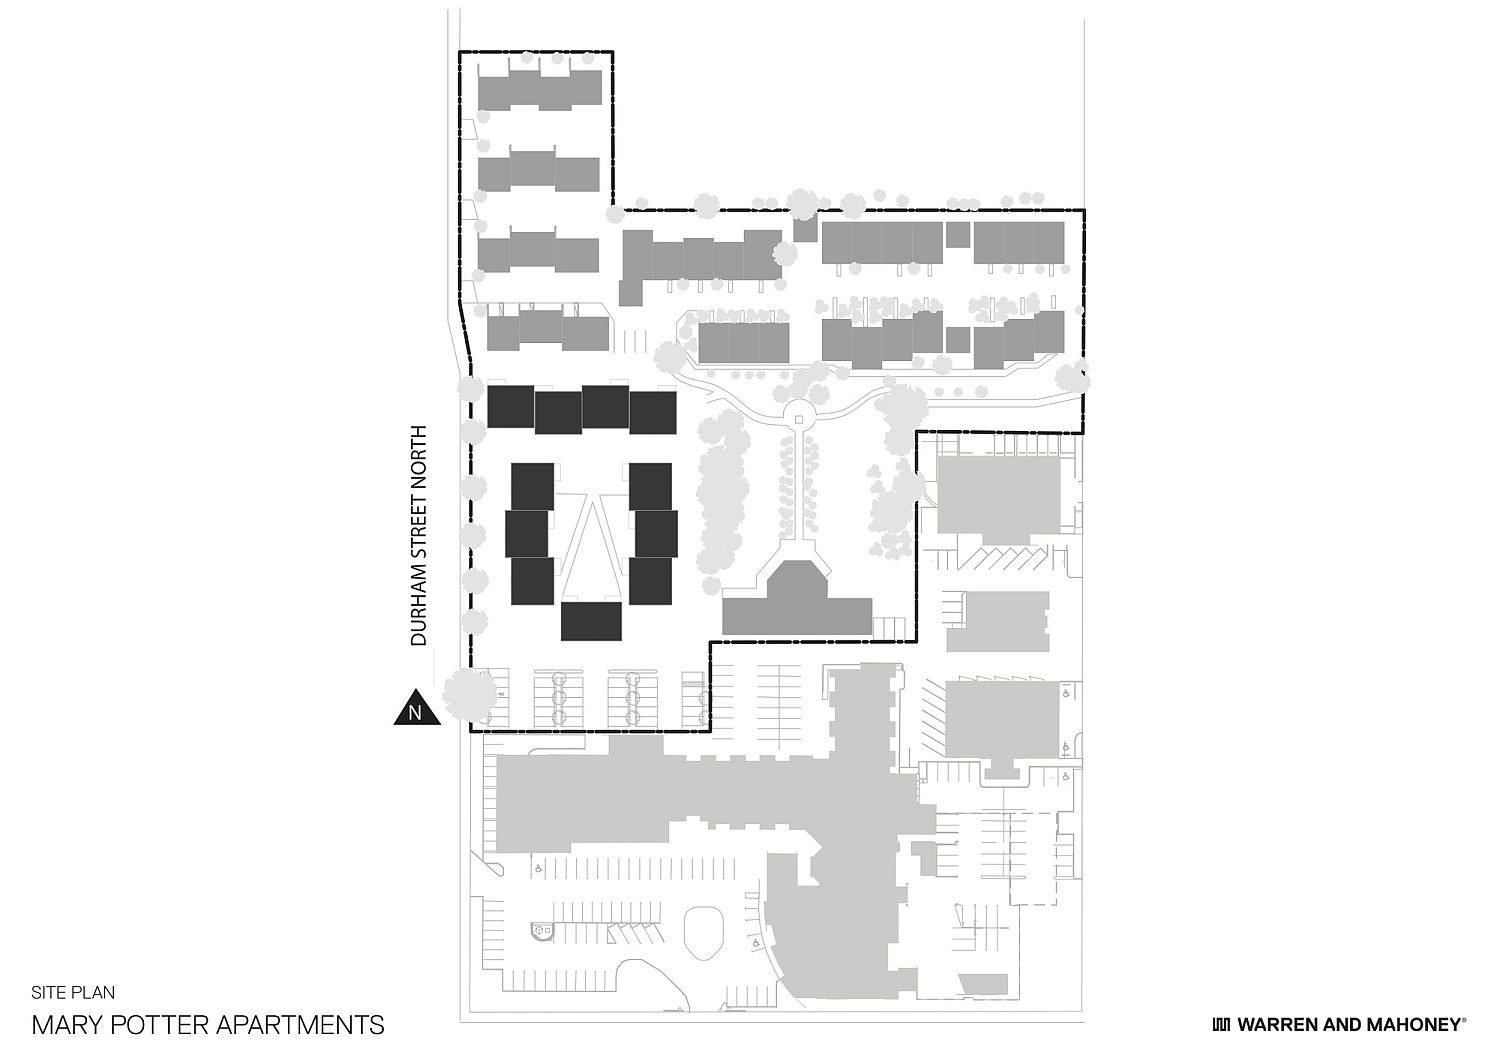 Site plan of 13 new Mary Potter Apartments in Christchurch